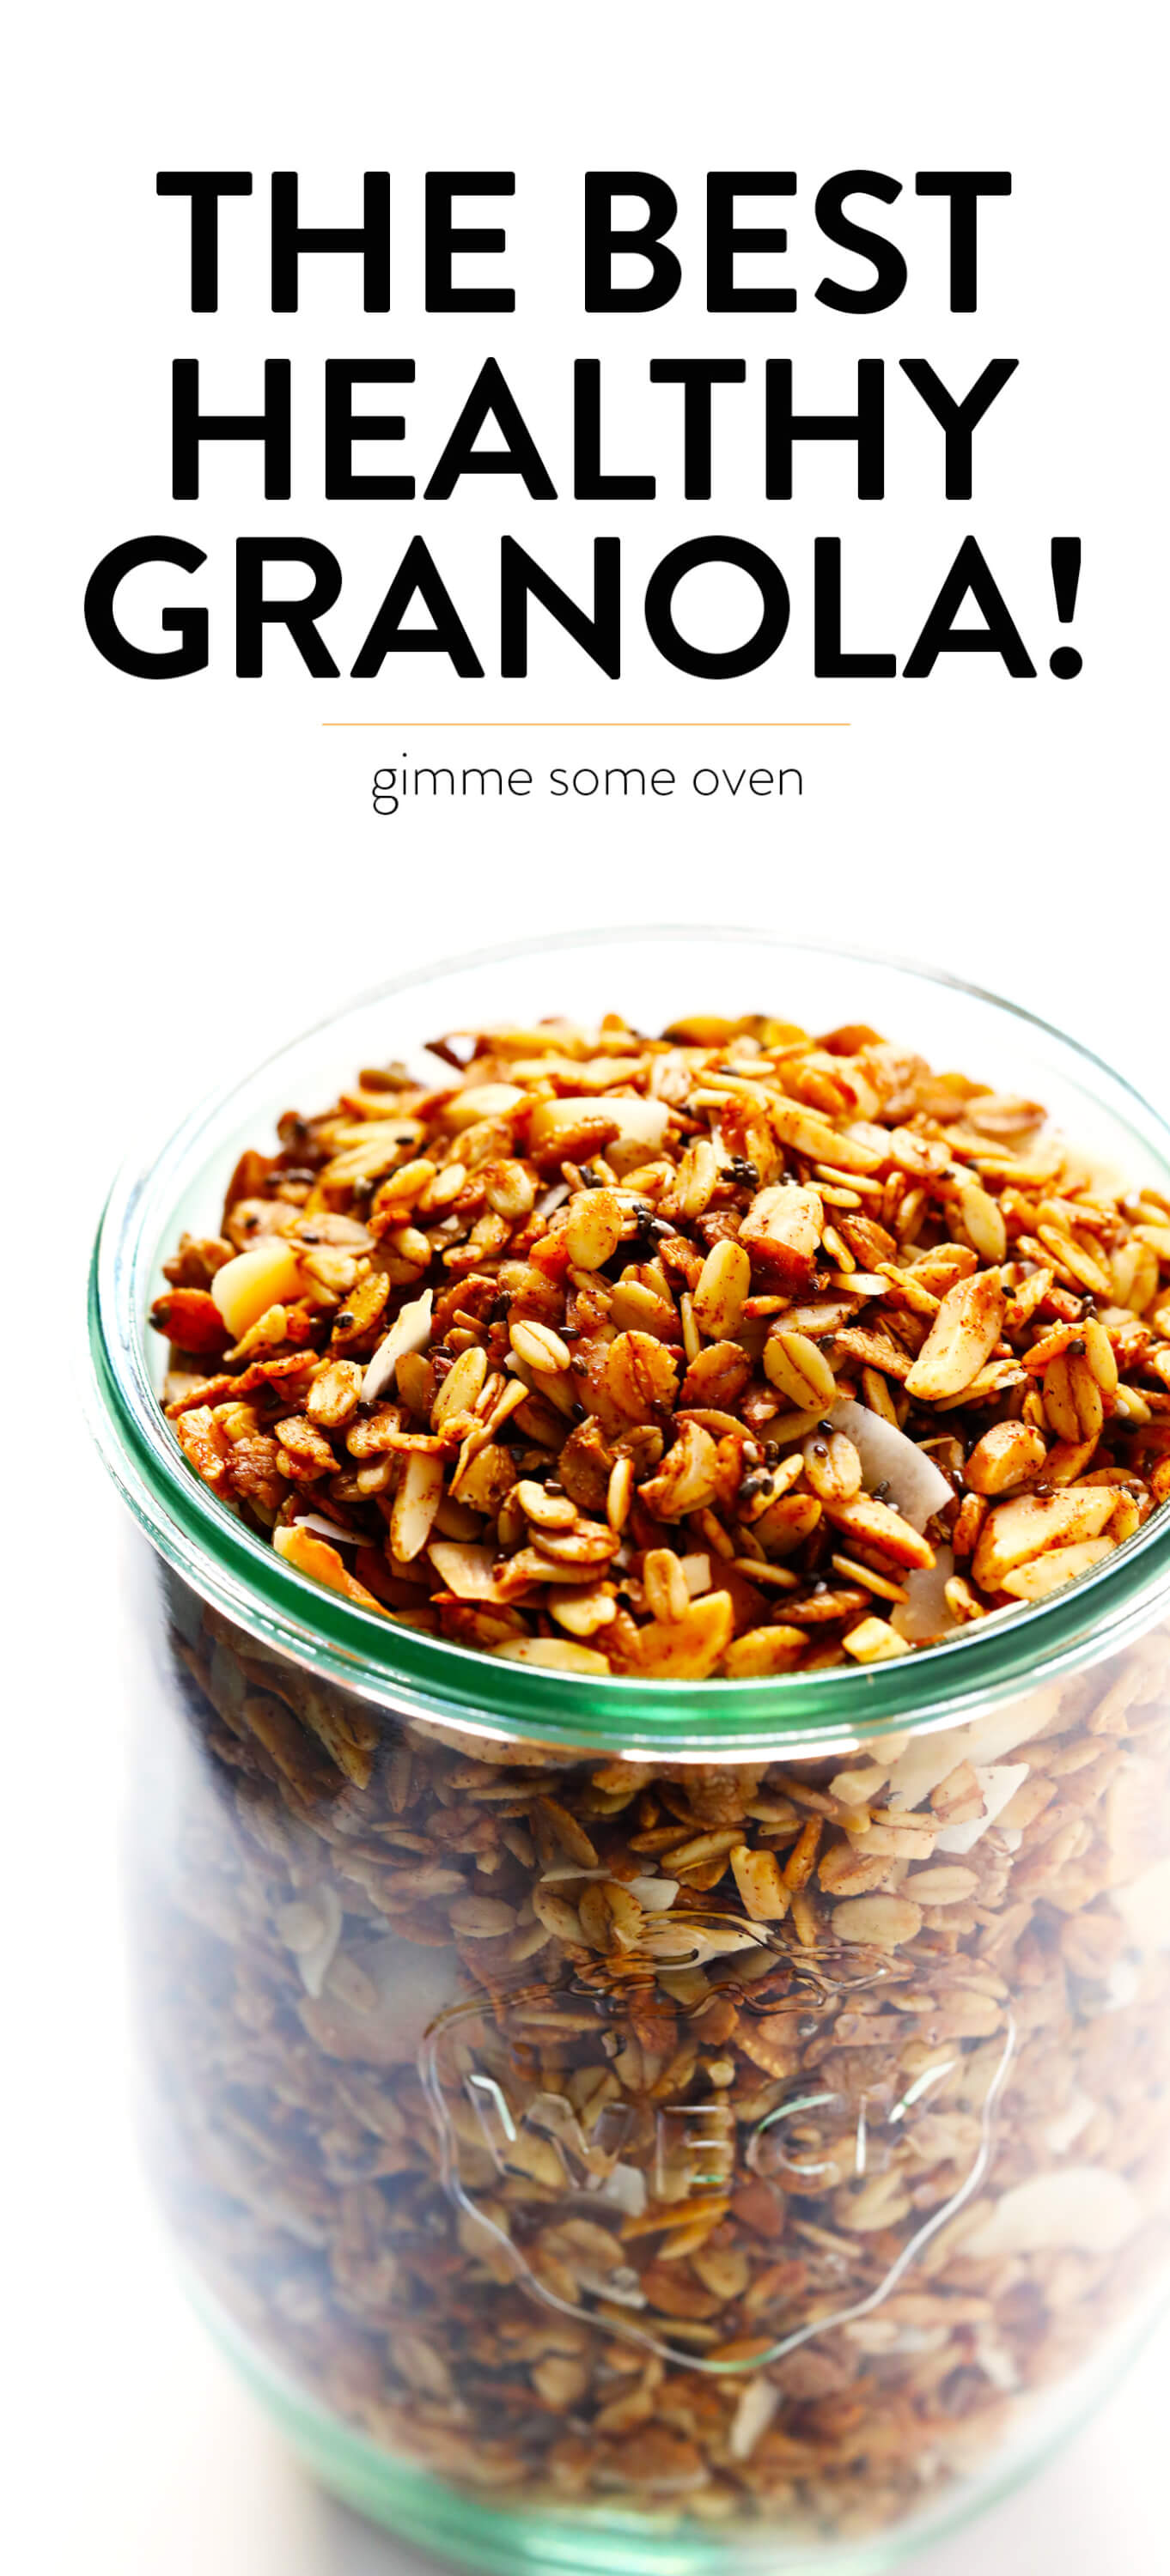 The Best Healthy Granola Recipe